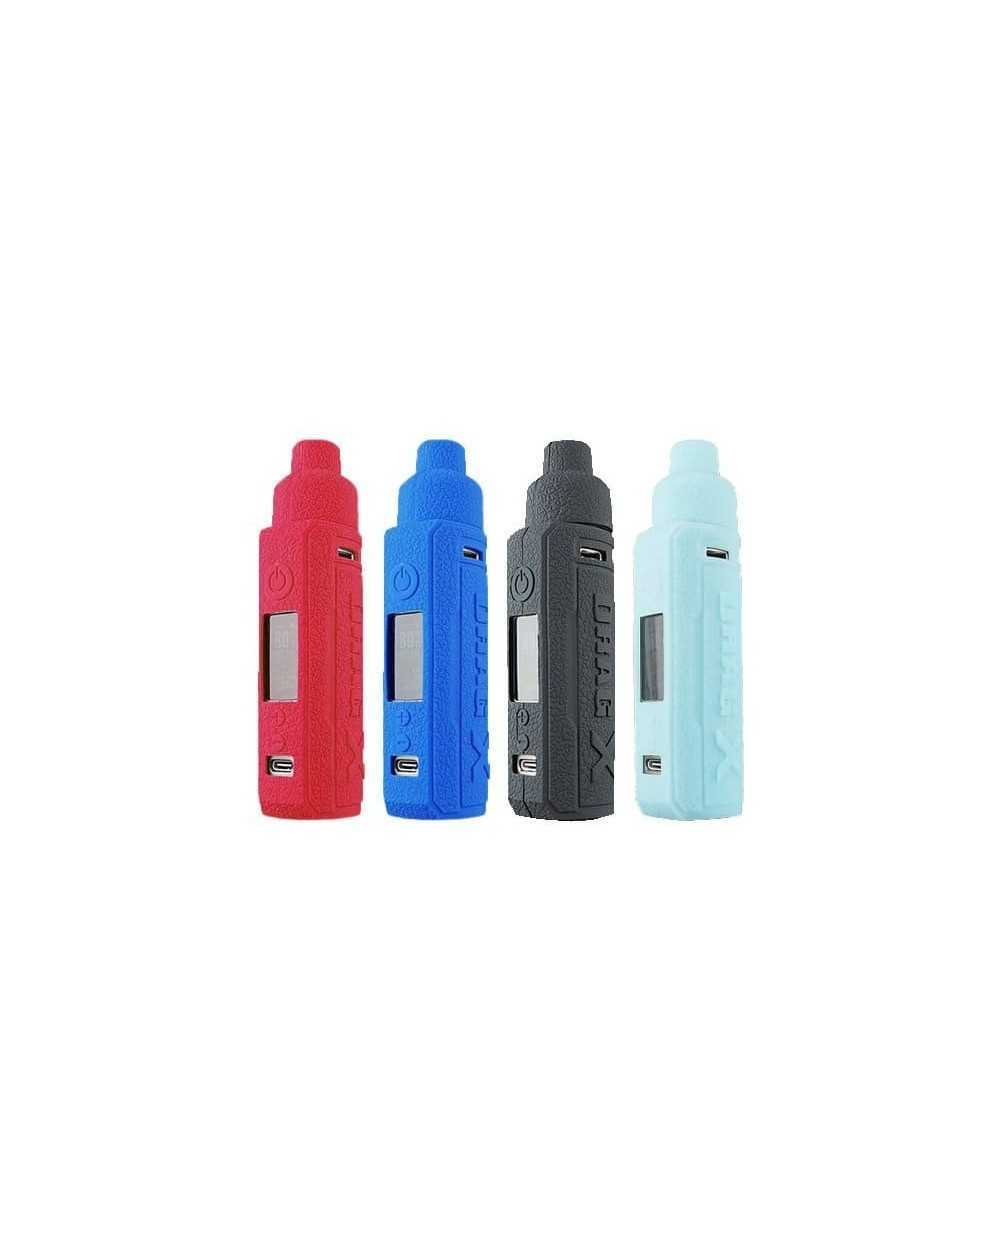 Silicone case for Drag X by Voopoo-1